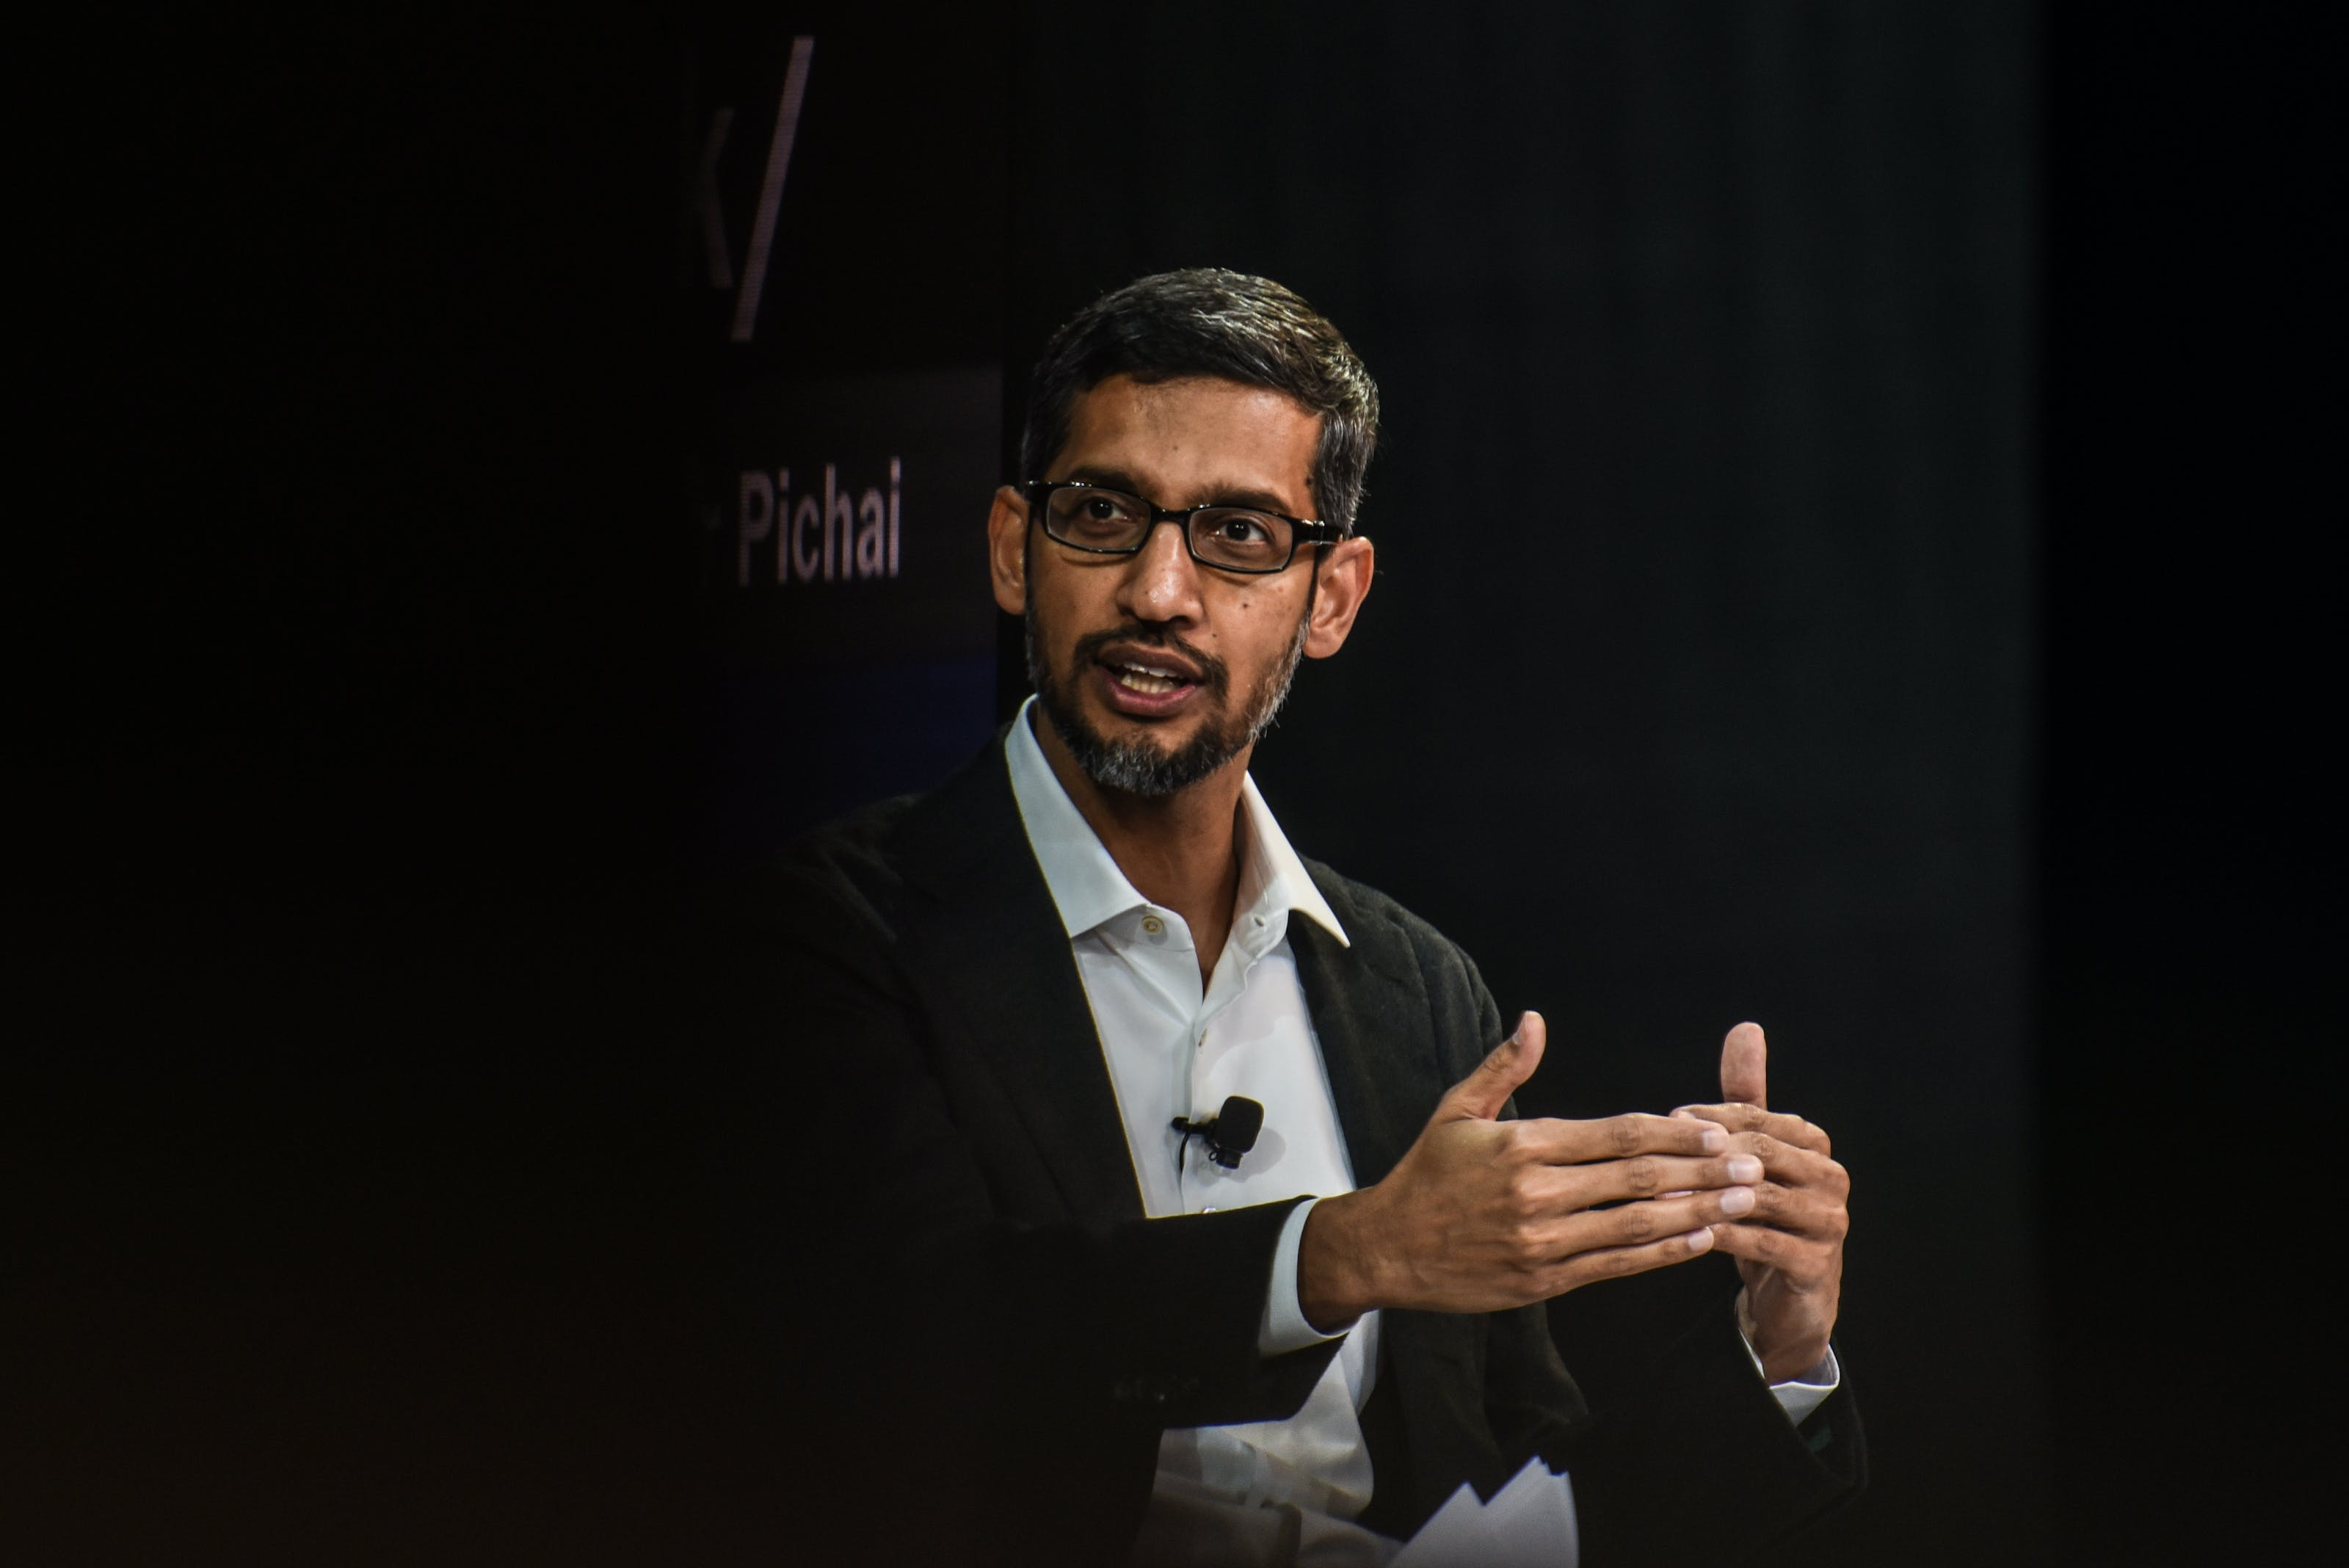 NEW YORK, NY - NOVEMBER 1: Sundar Pichai, Cd.E., Google Inc., speaks at the New York Times DealBook Conference on November 1, 2018 in New York. (Photo by Stephanie Keith / Getty Images)